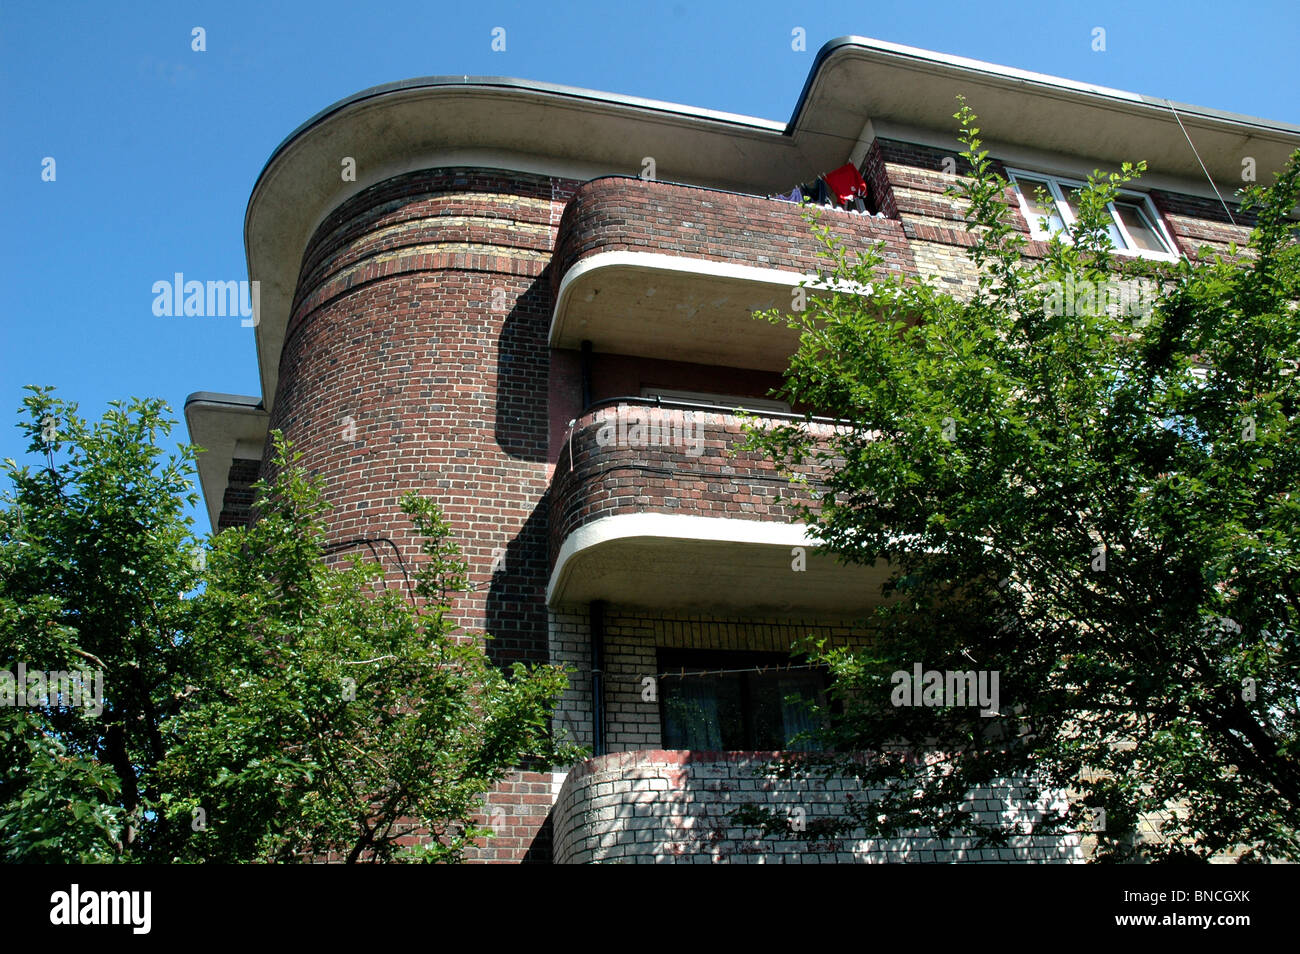 Characteristic  curved Deco Brick Architecture on an inter war Public Housing  Project  Dublin Ireland Stock Photo